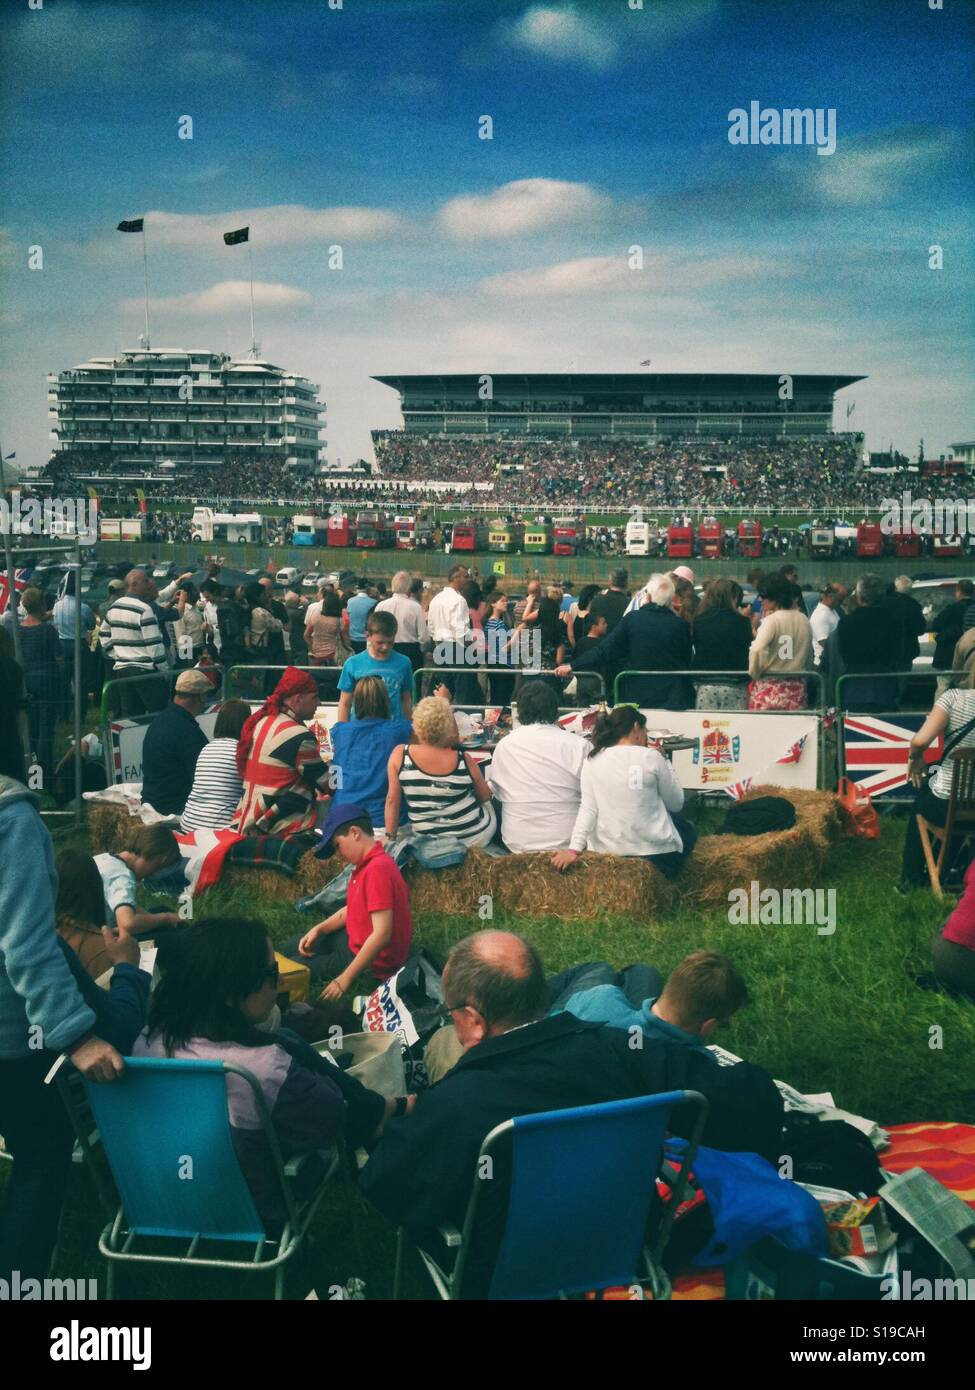 Crowds at Derby Day in Epsom - Stock Image